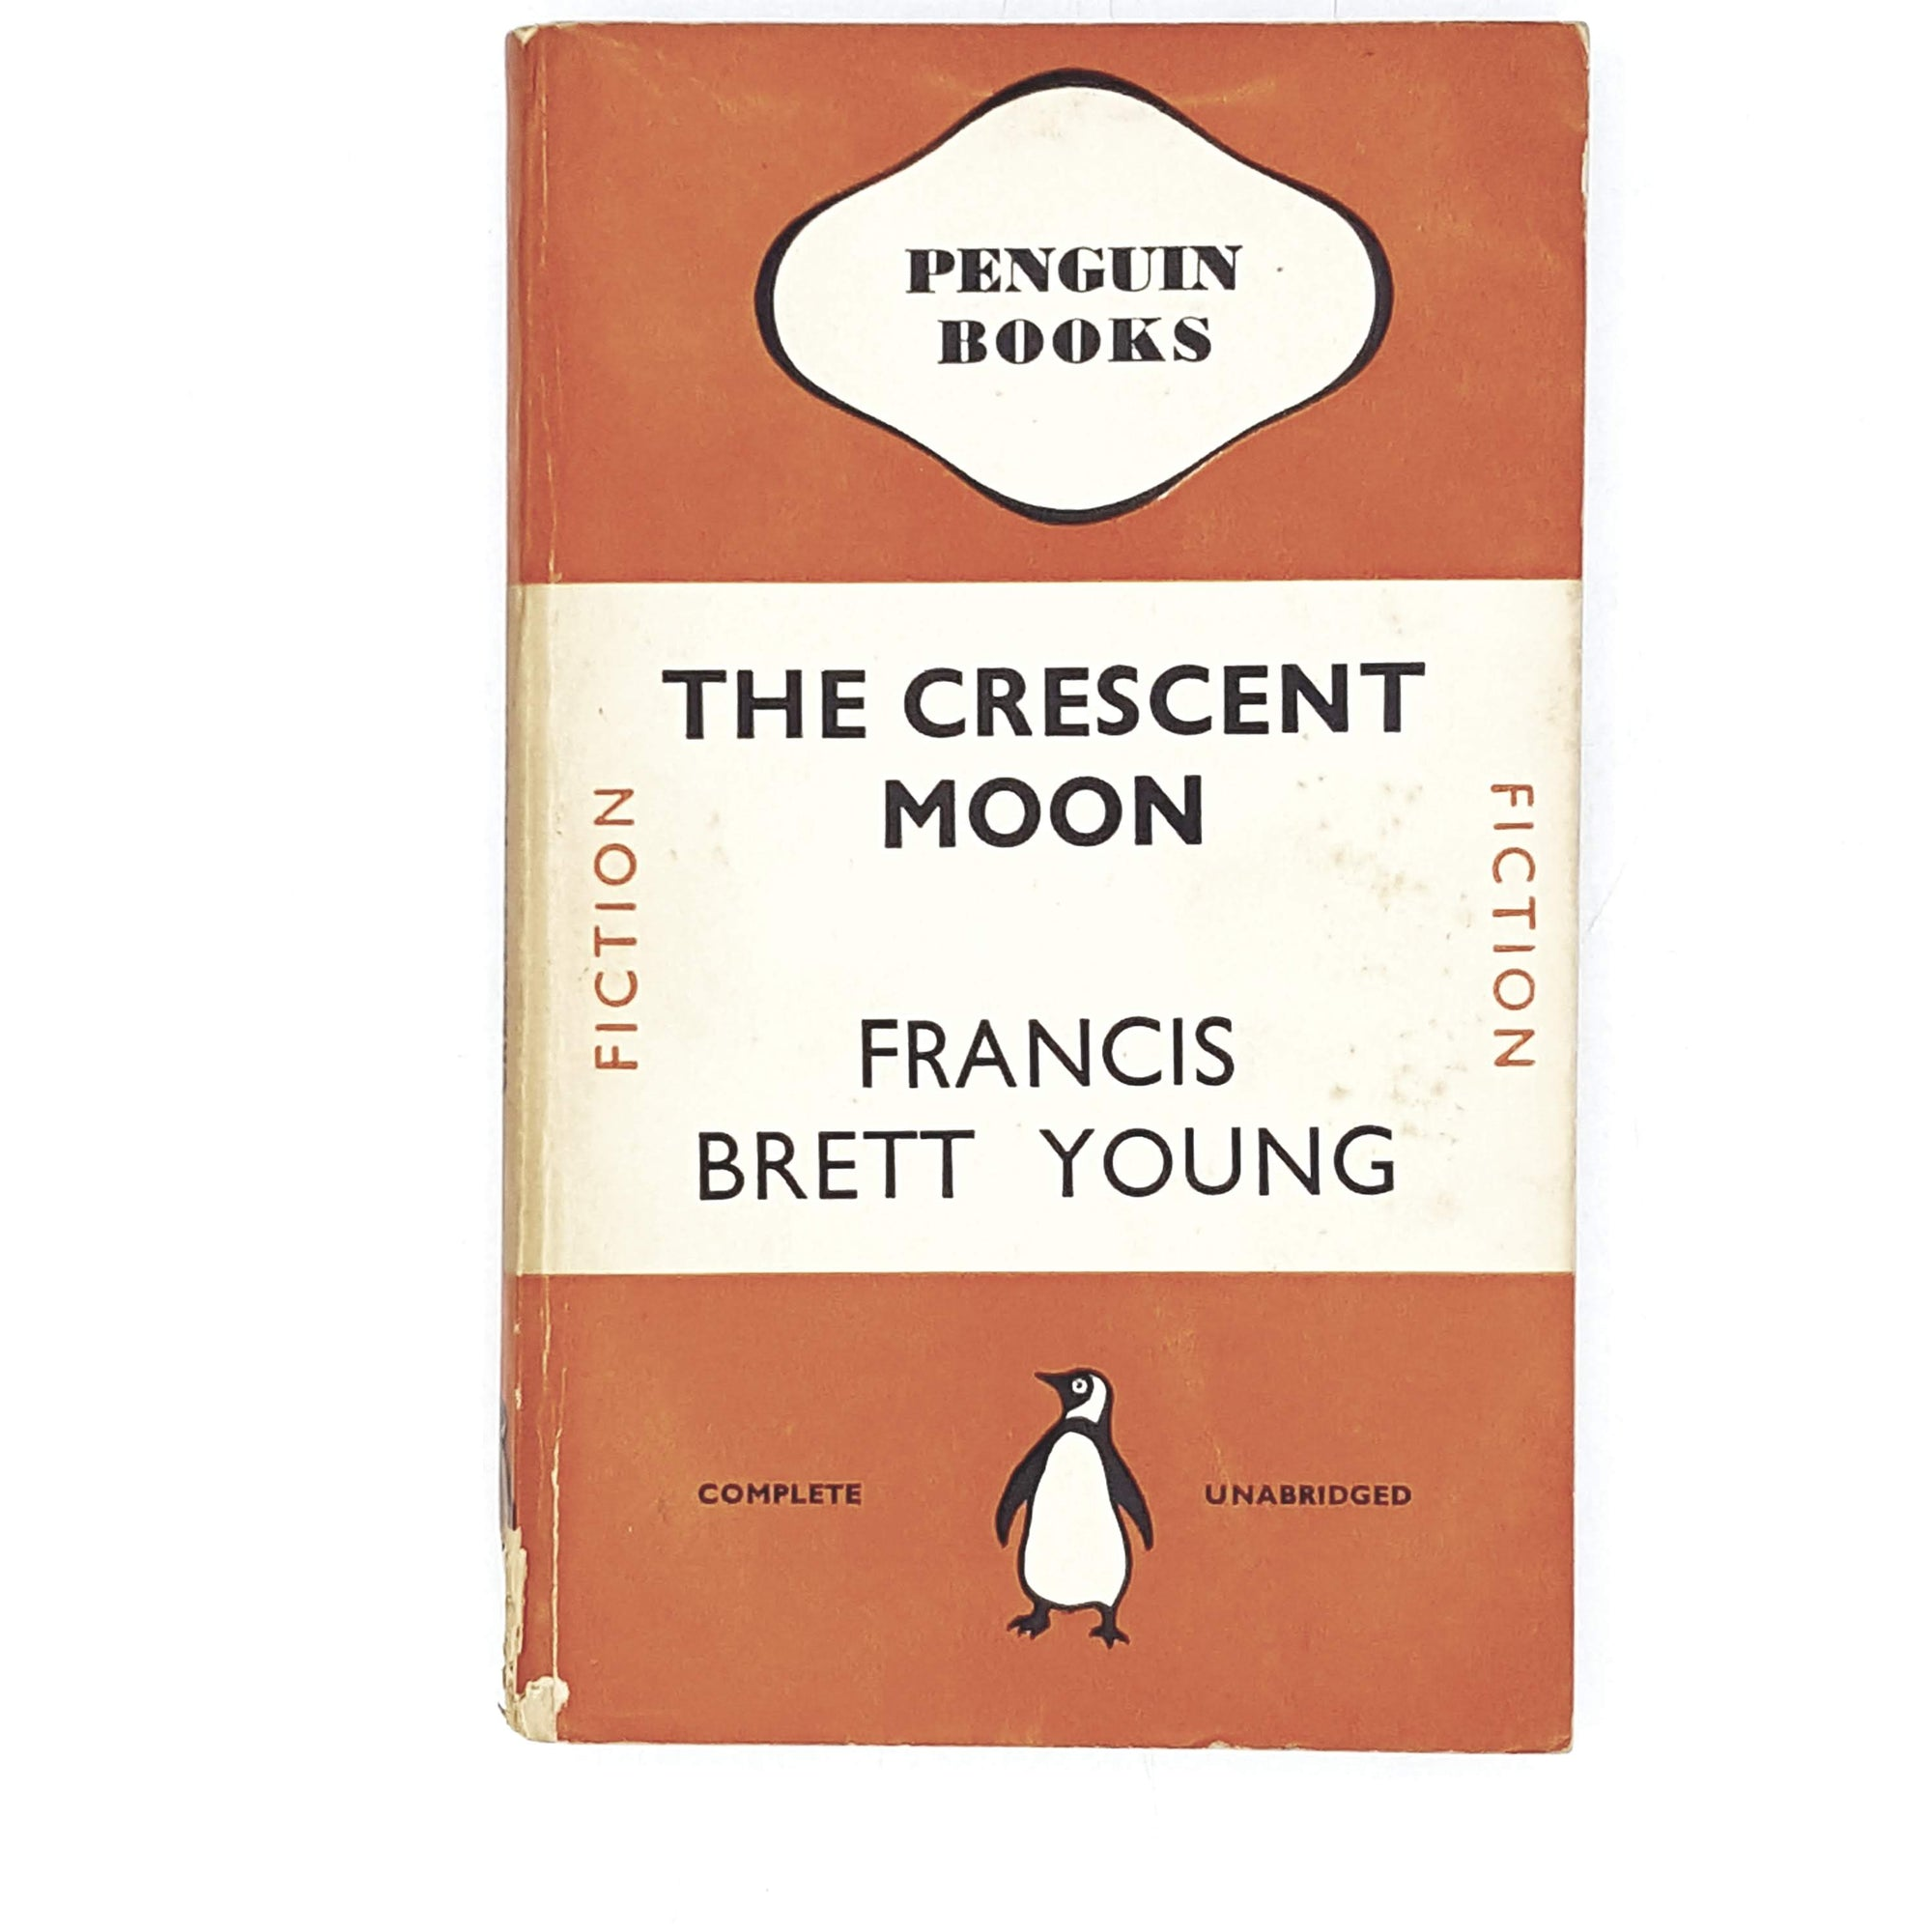 Vintage Penguin The Crescent Moon by Francis Brett Young 1939